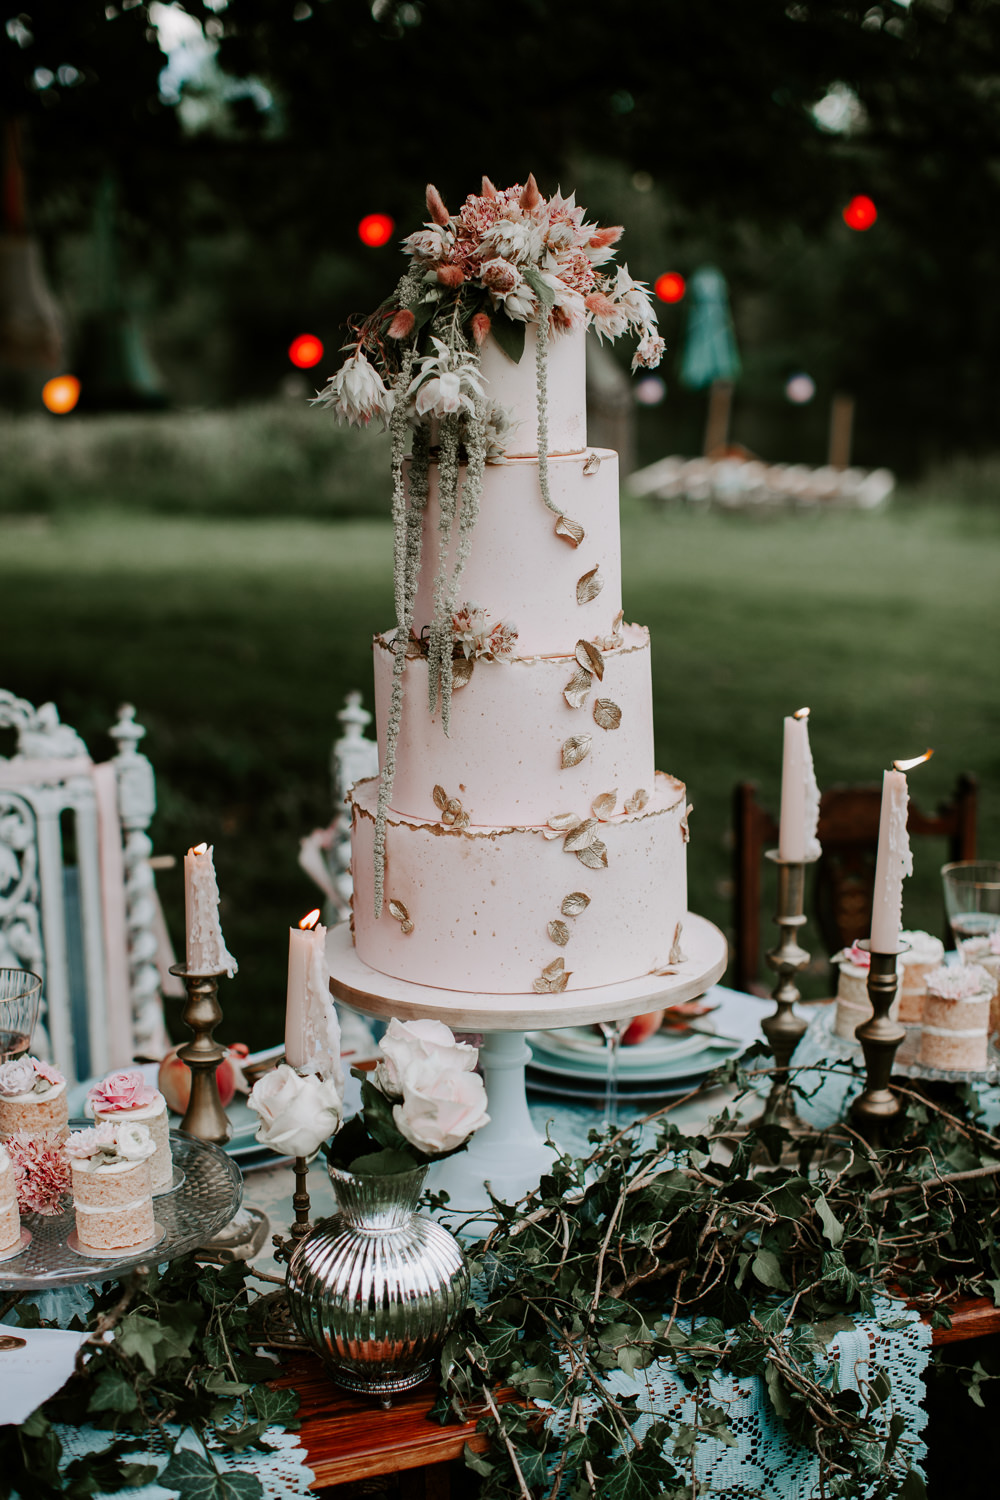 Cake Tall Iced Flowers Metallic Gold Leaves Candles Whimsical Wedding Ideas Charlotte Lucy Photography